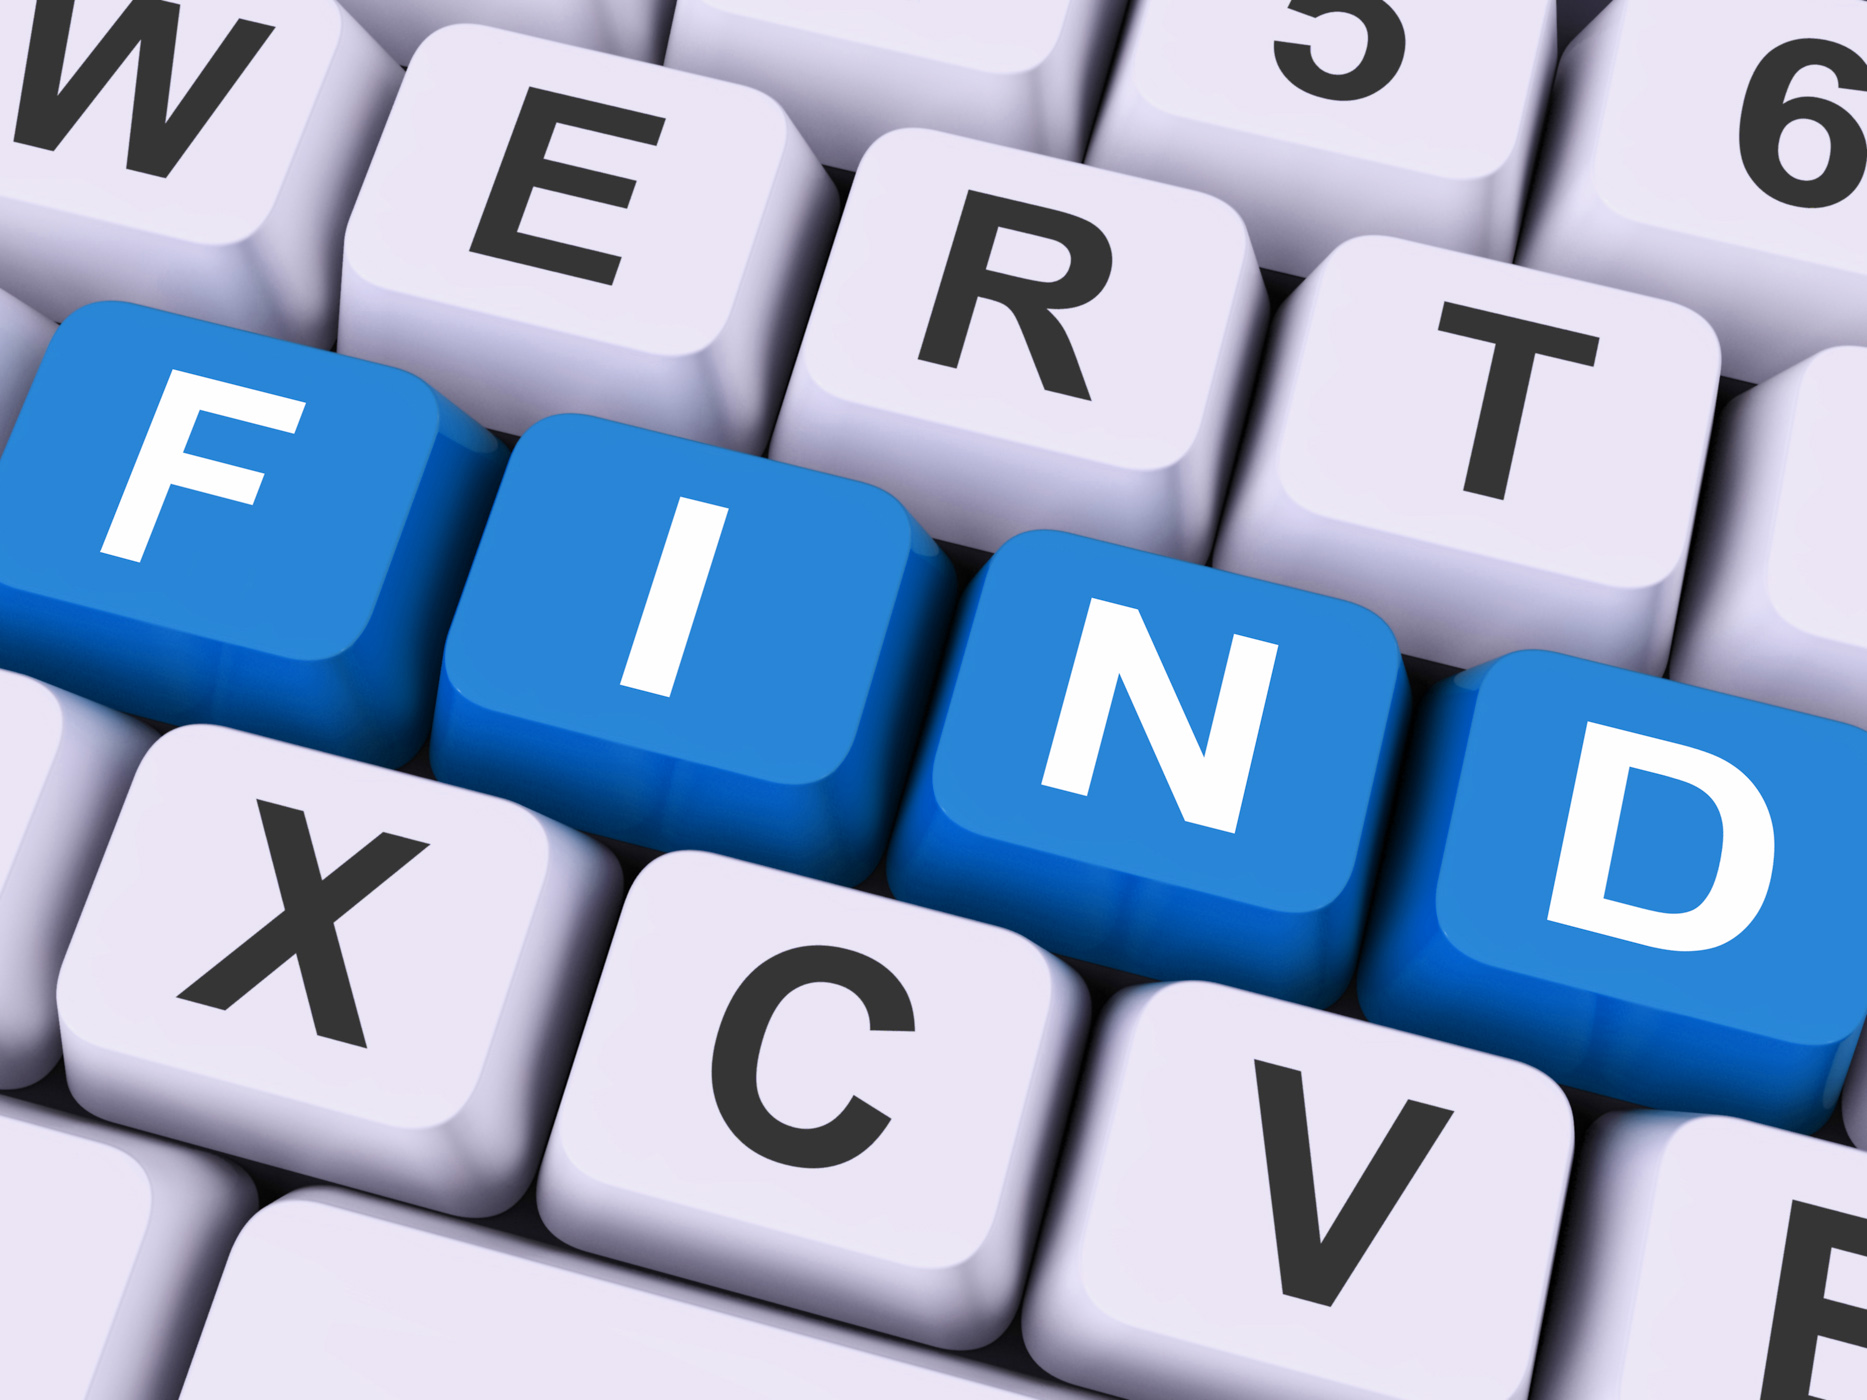 Find Keys Show Search Research Or Looking Online, Research, Lookfor, Search, Searching, HQ Photo